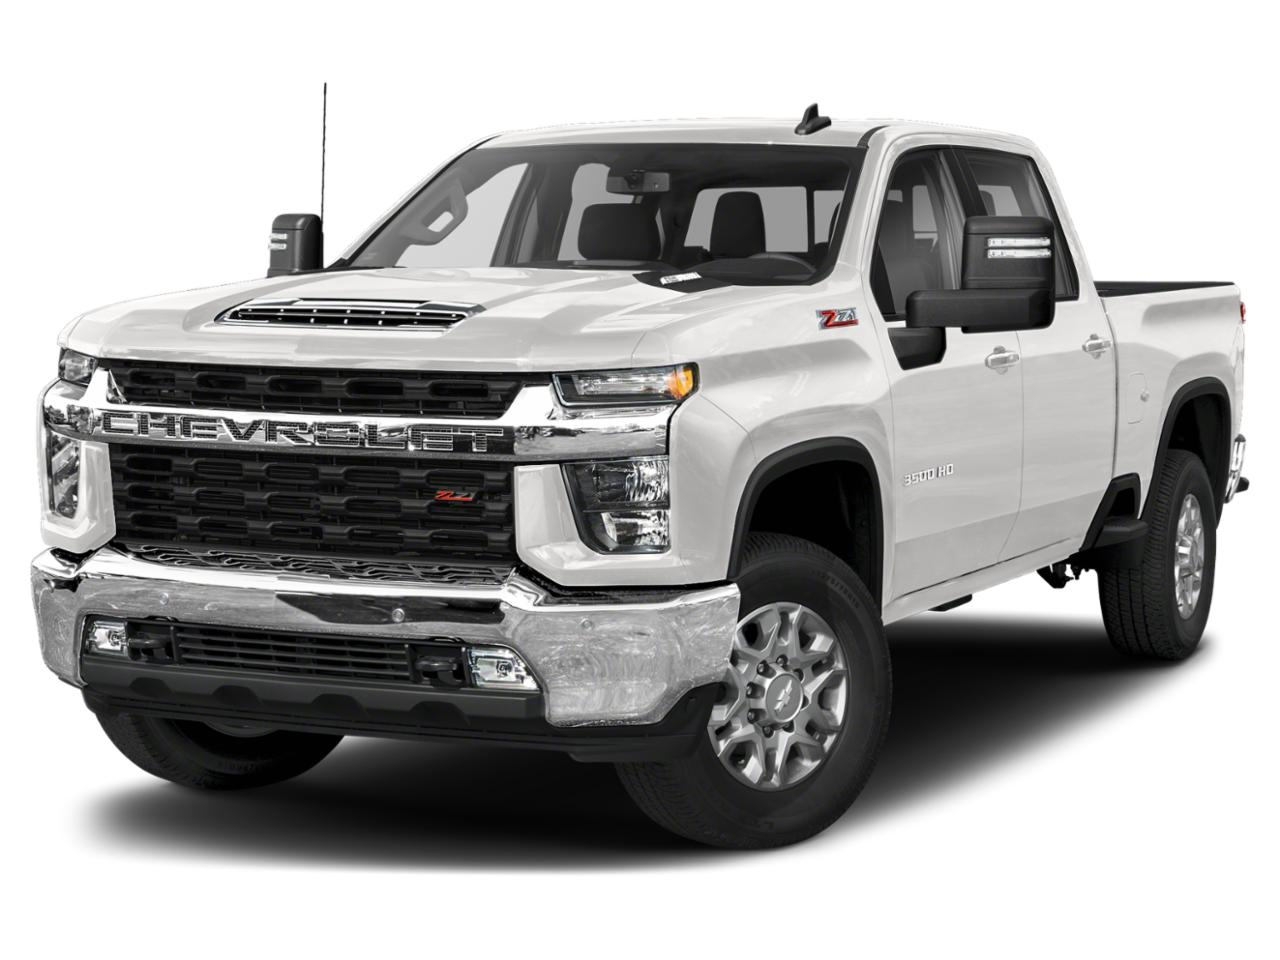 2021 Chevrolet Silverado 3500HD Vehicle Photo in Terryville, CT 06786